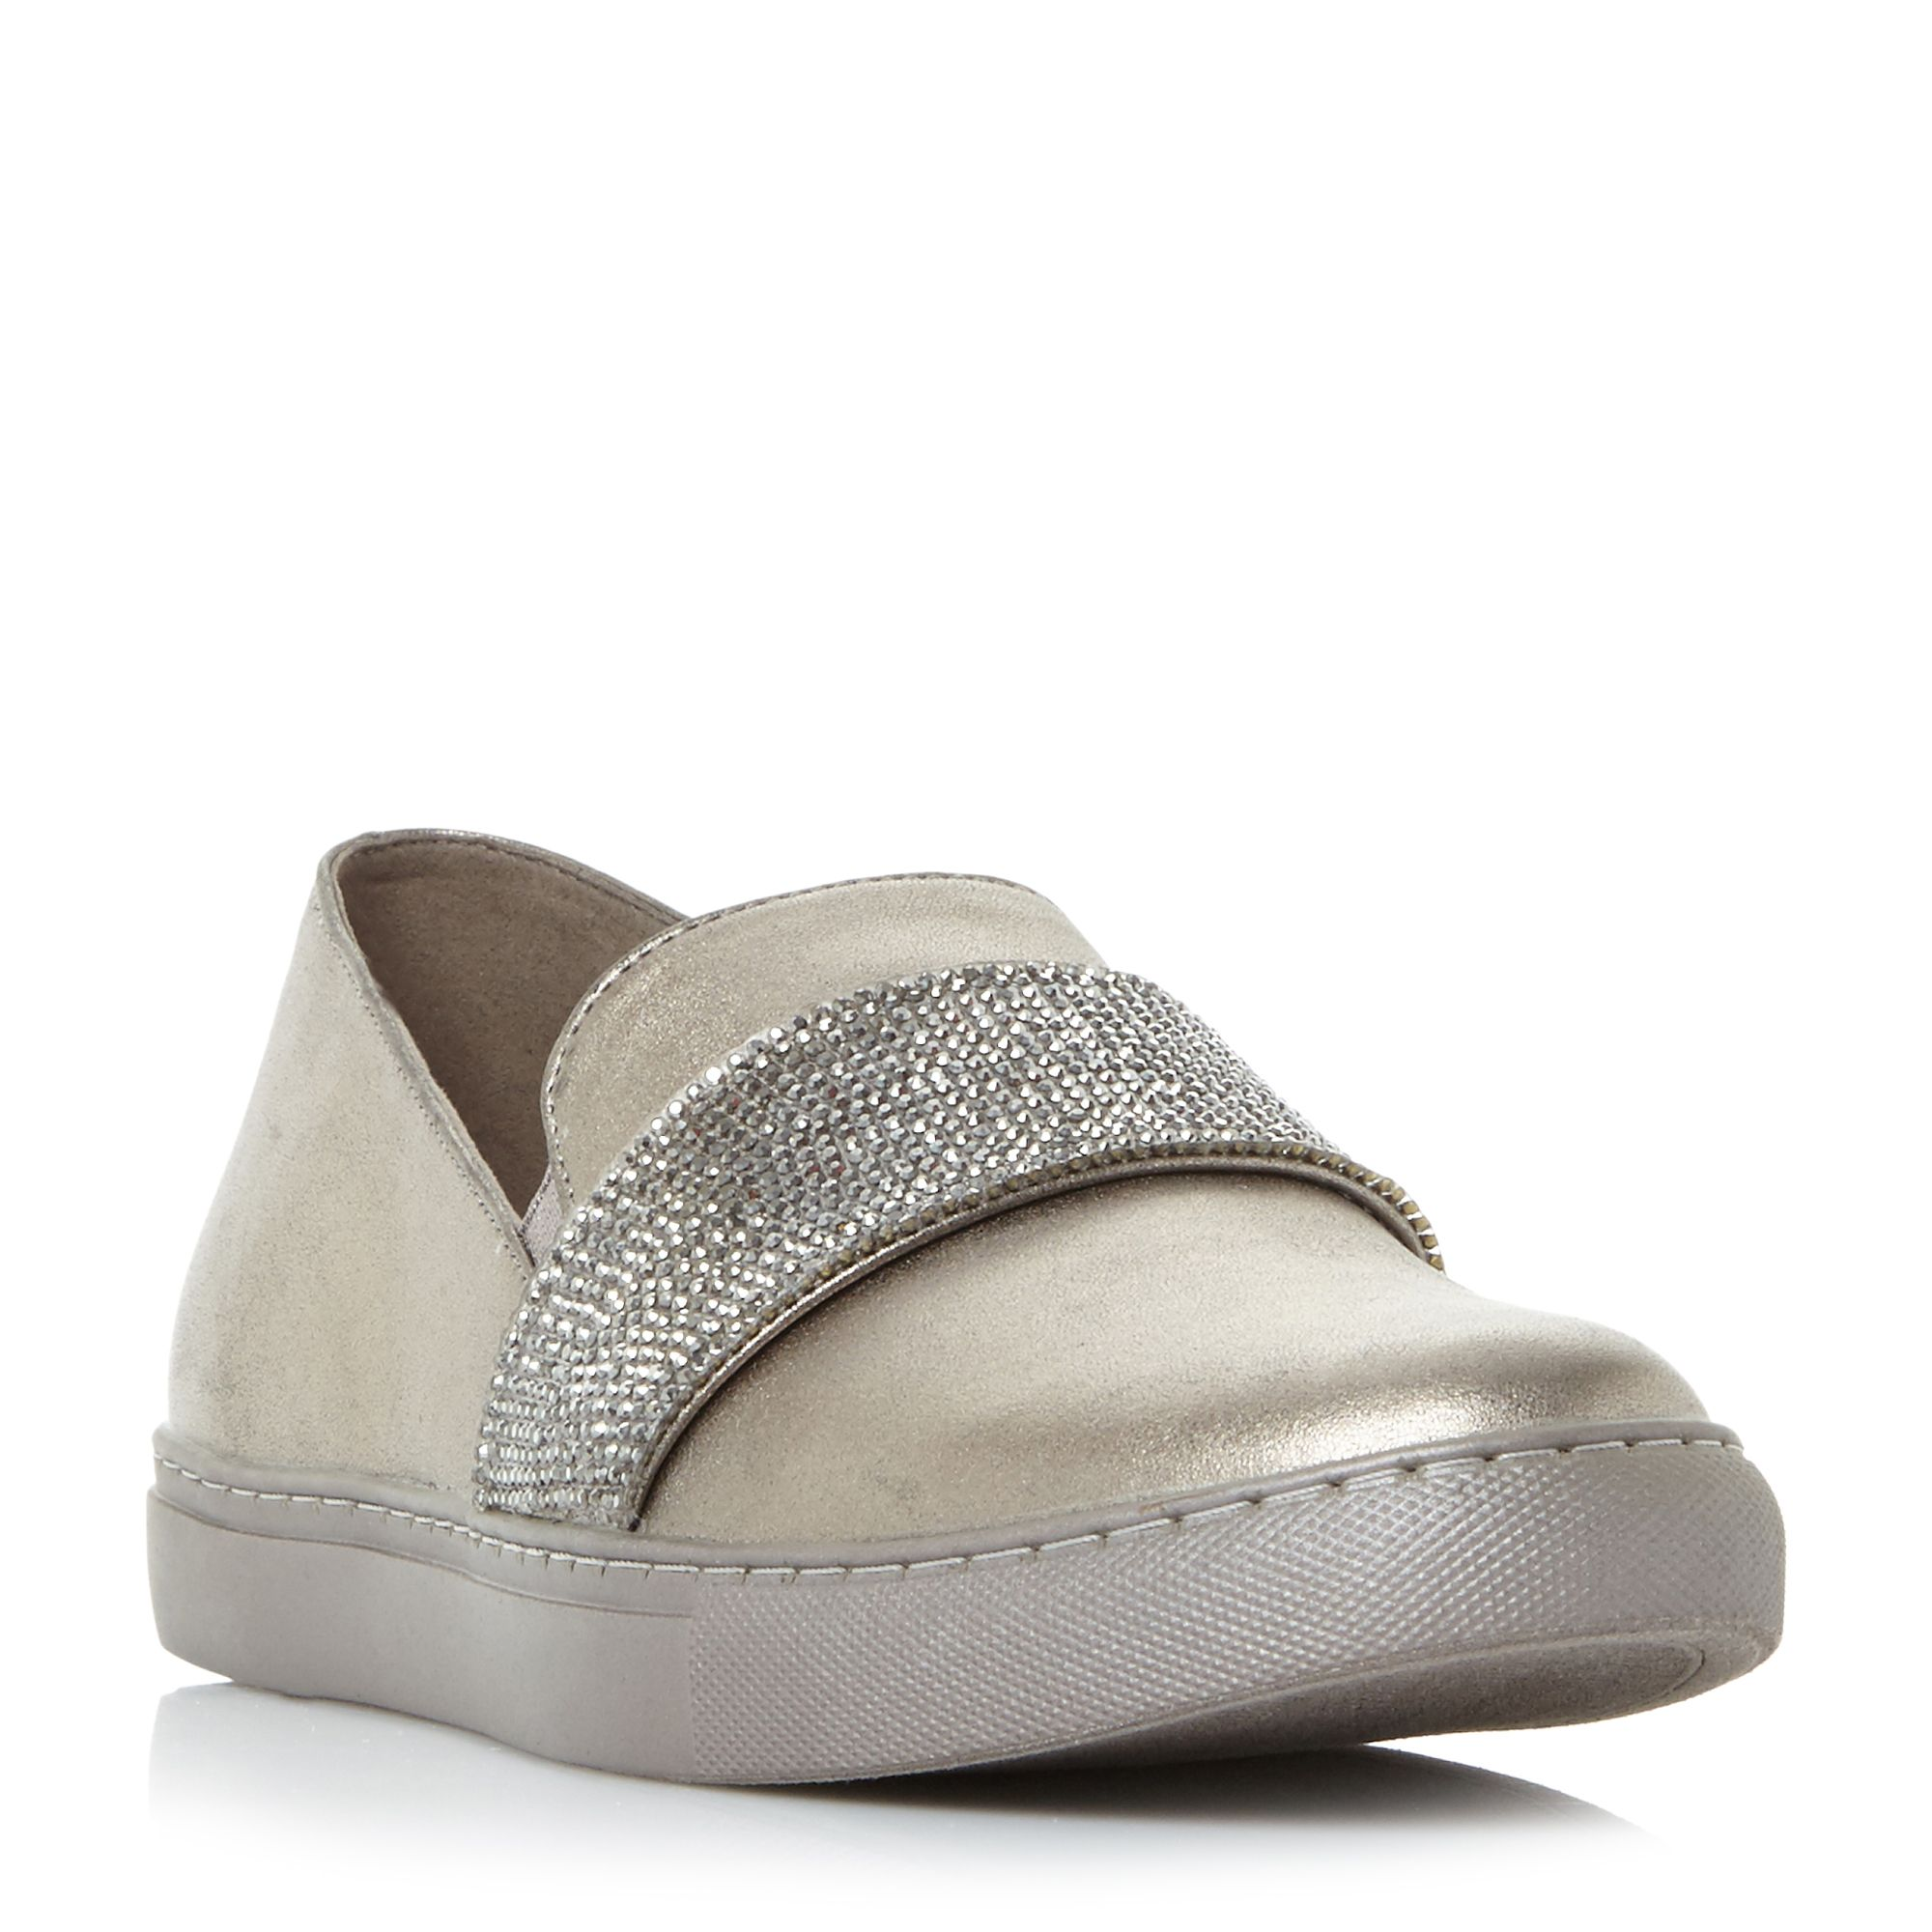 Kenneth Cole Kam Jewel Jewelled Cupsole Slip On Shoes, Pewter